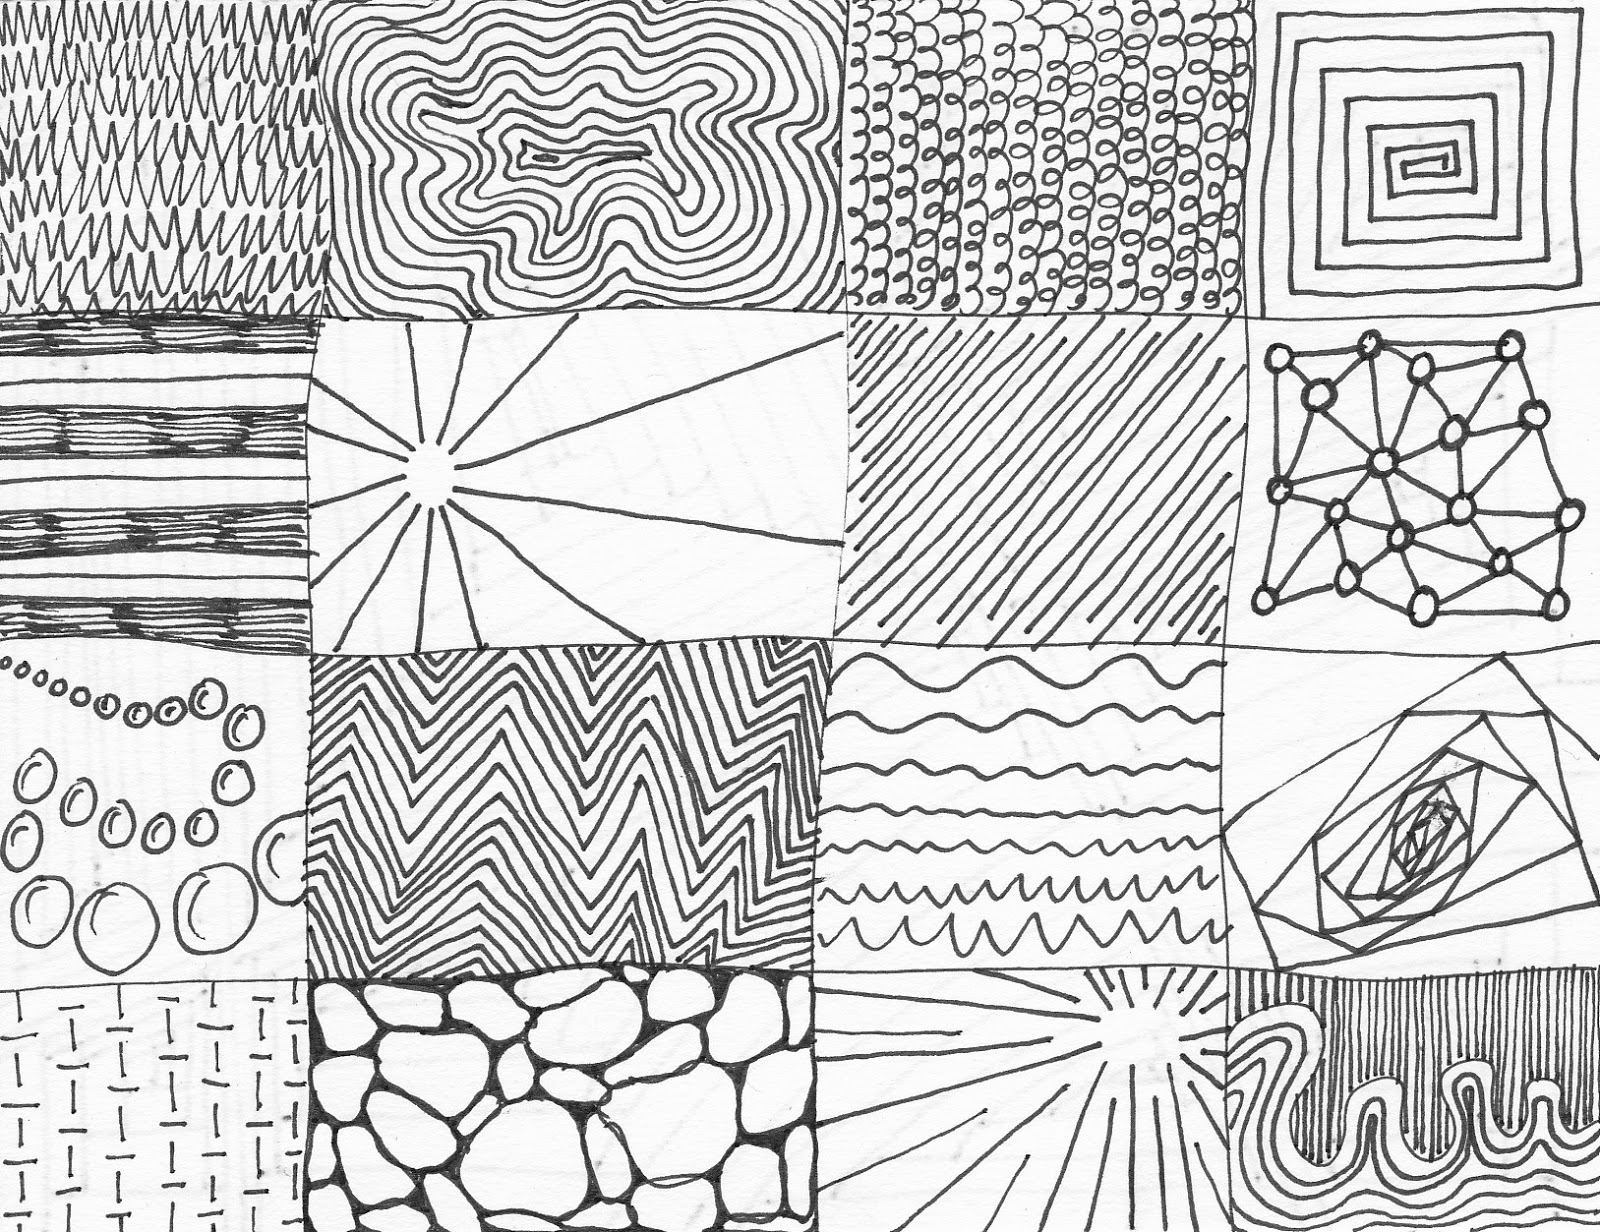 Elements Of Design Line Art : Elements of visual language principles art and design